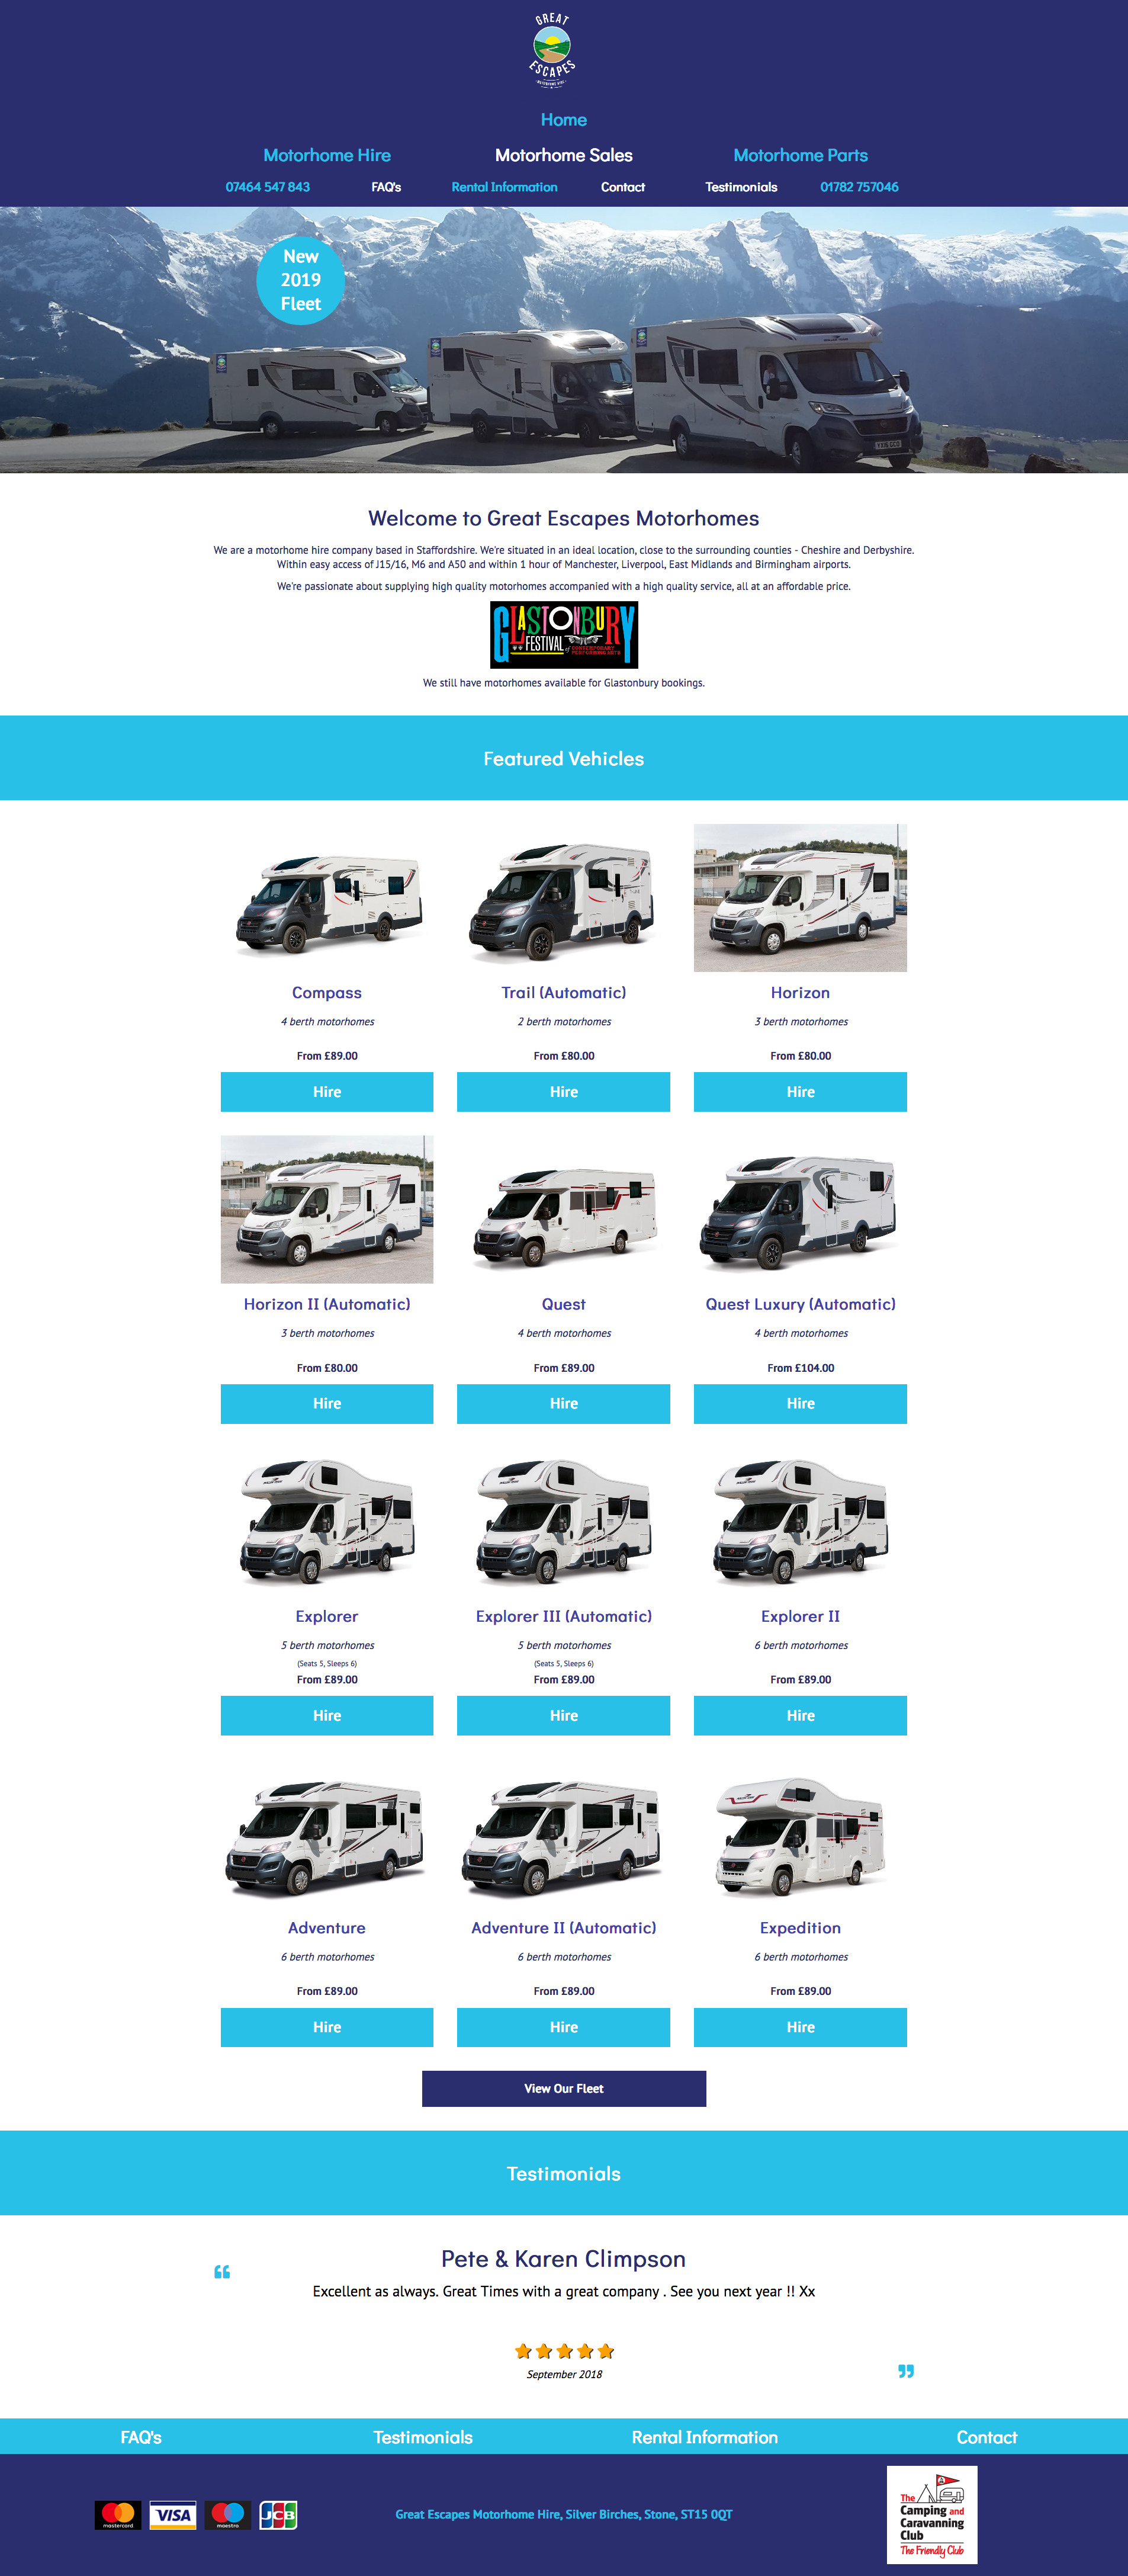 Great Escapes Motorhome Hire